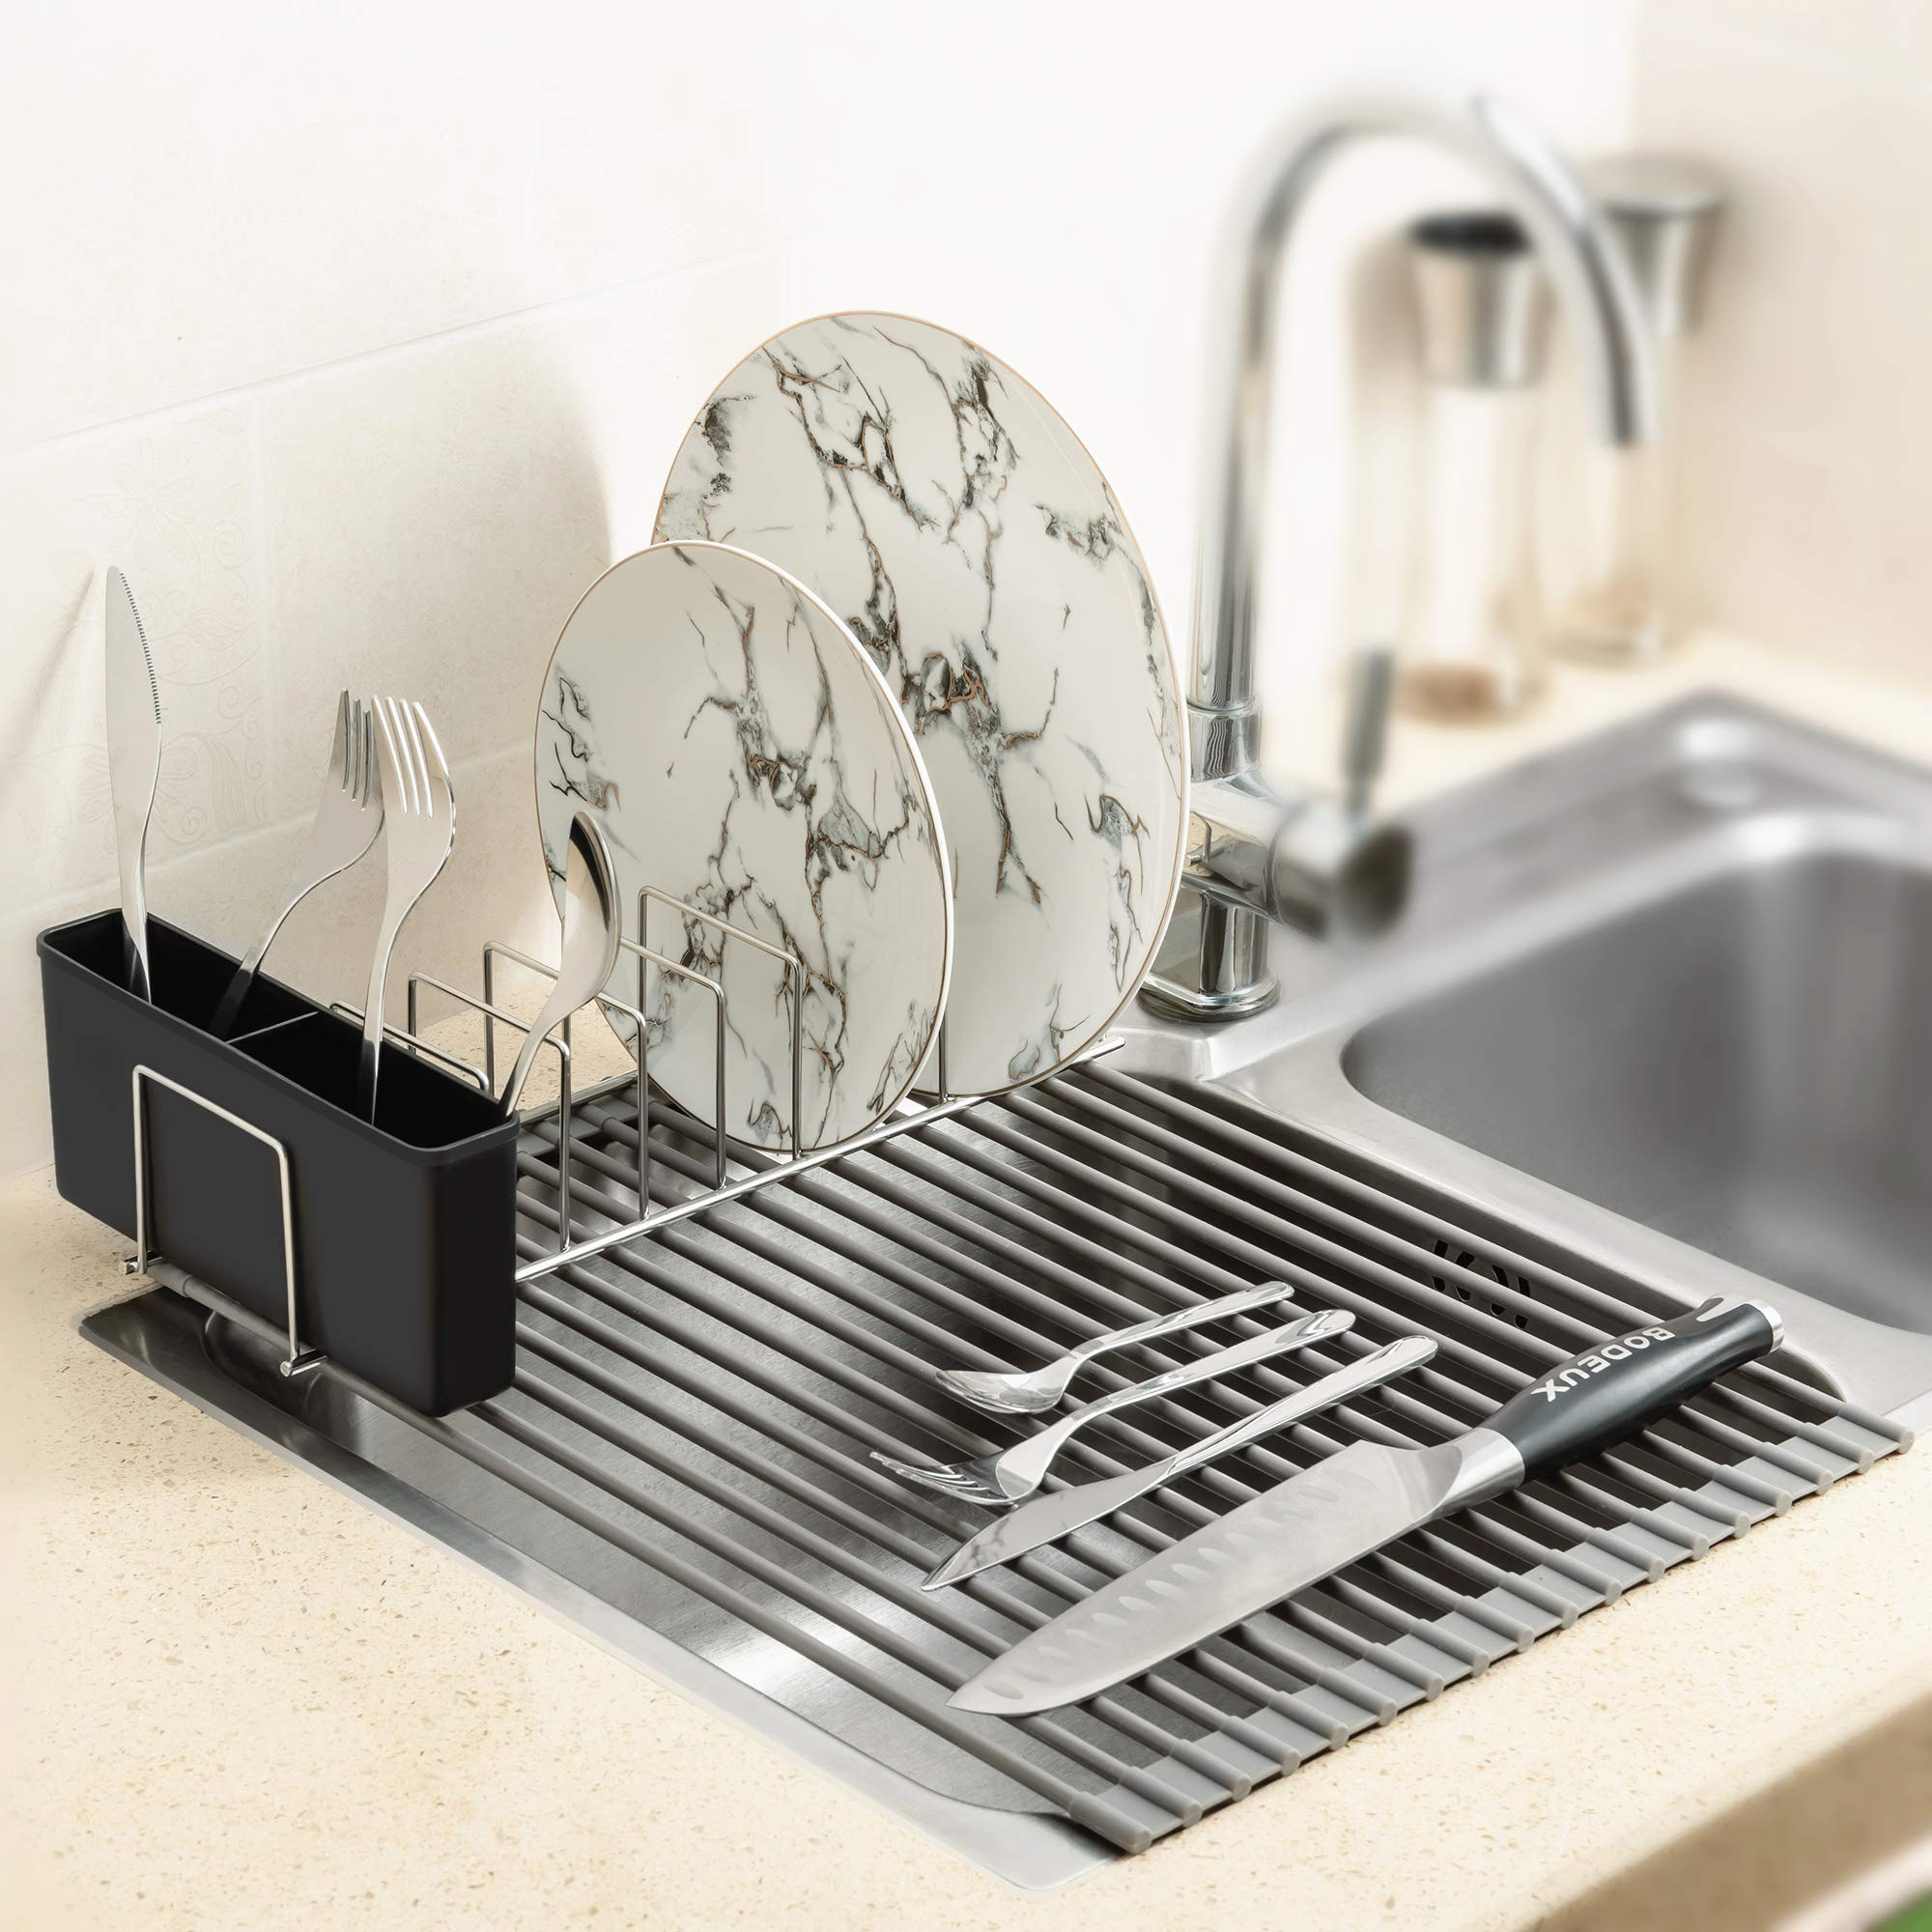 iPEGTOP Over The Sink Roll-Up Dish Drying Rack Multipurpose Dish Drainer  Mat with Plates Holder, Fruits and Vegetable Rinser - Durable Silicone  Covered Stainless Steel L w Black Box Gray: Dish Drainers: